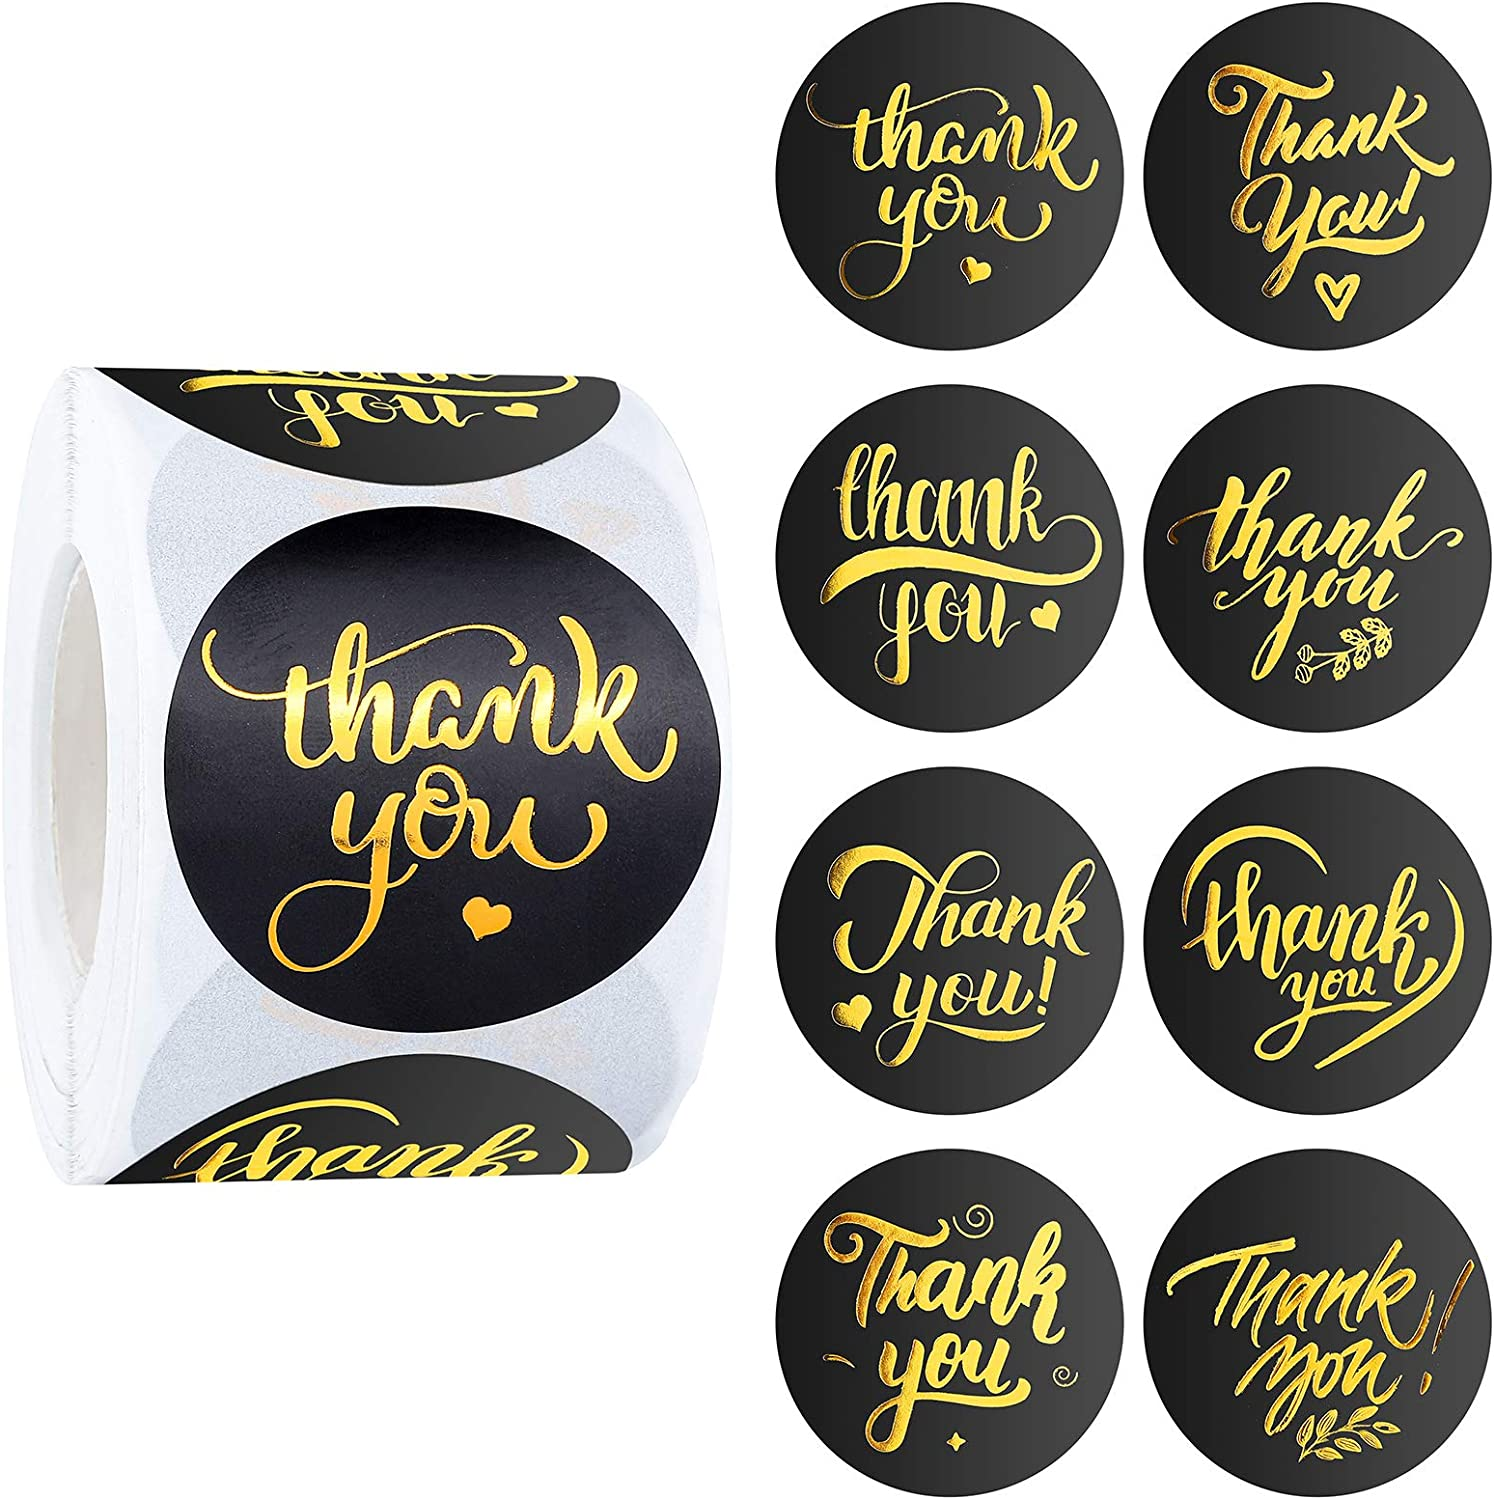 Elcoho 500 Pieces 2 Inches Thank You Stickers Thank You Labels Black and Gold Stickers in 8 Designs for Birthdays, Weddings, Giveaways, Bridal Showers